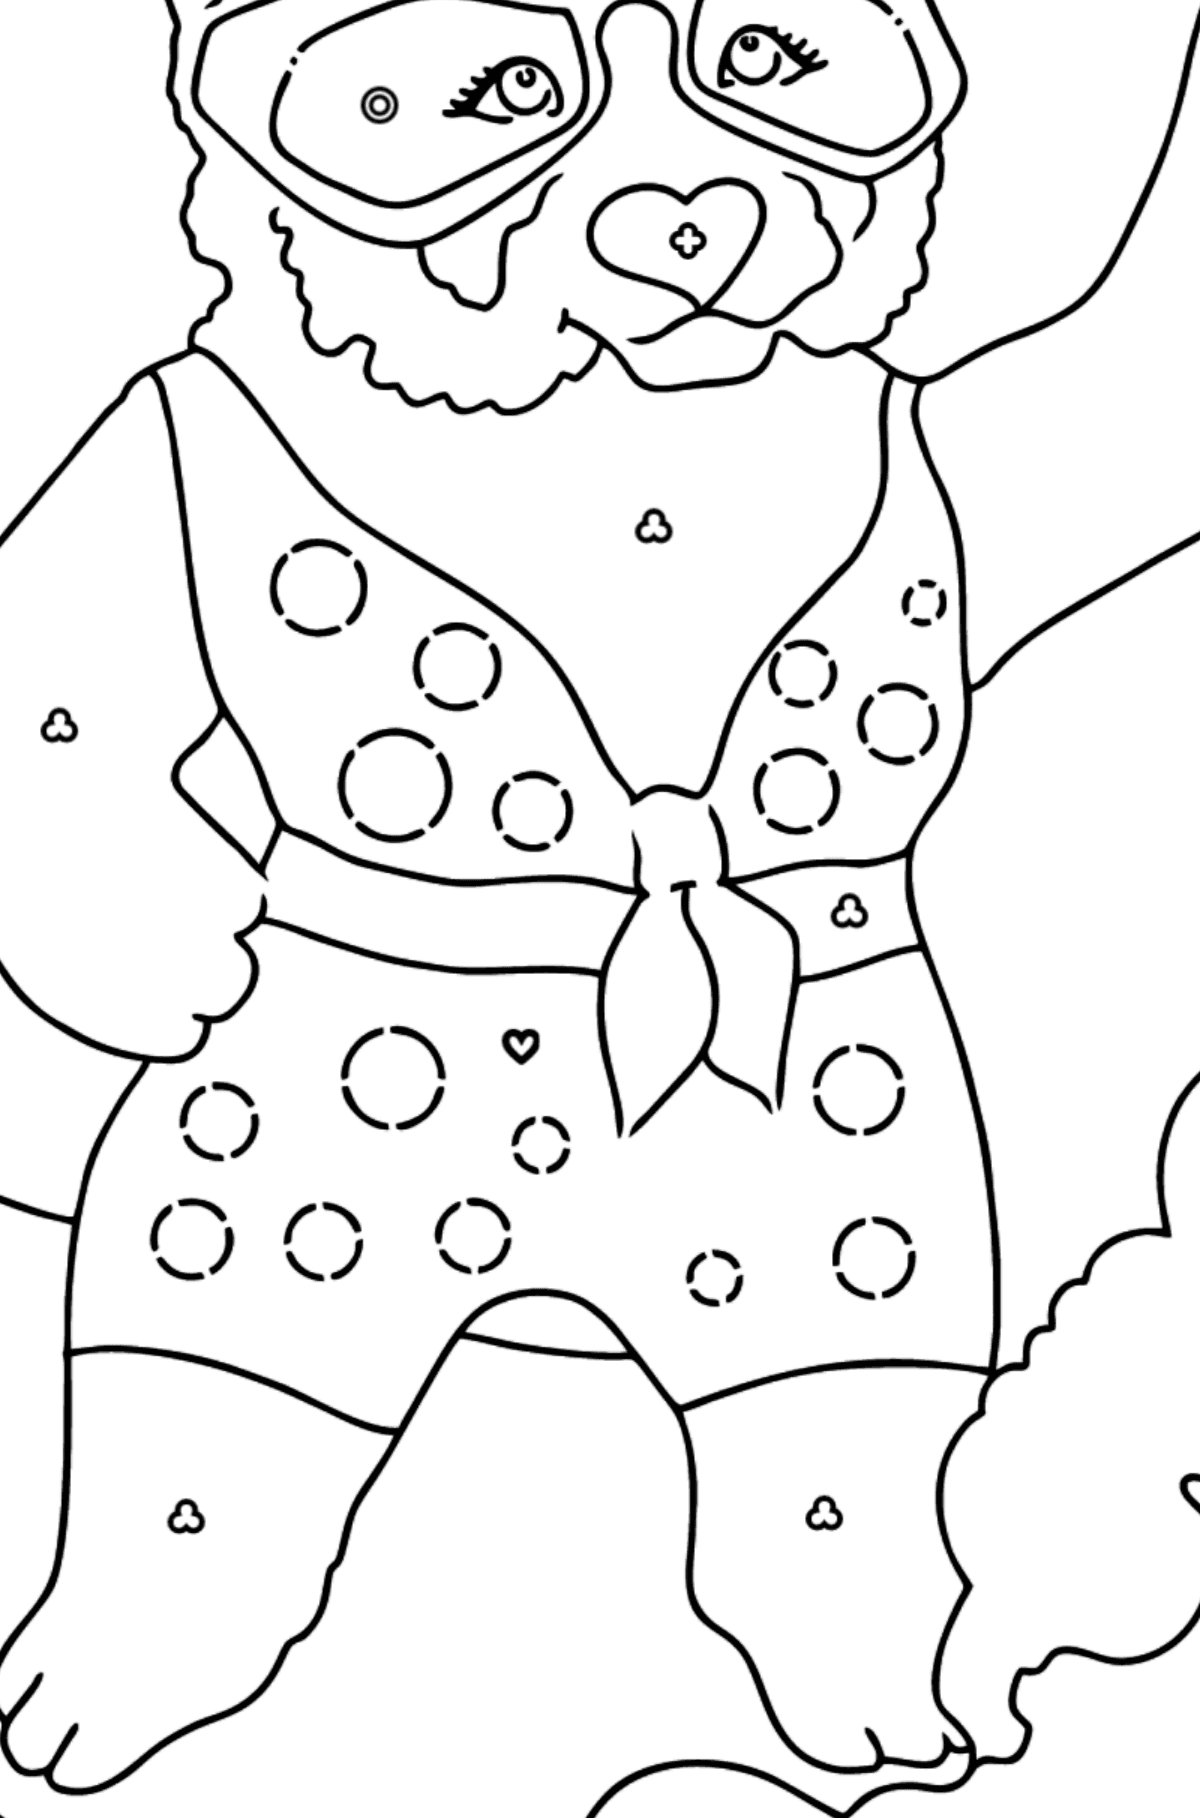 Coloring Page - A Panda Surfer - Coloring by Geometric Shapes for Kids